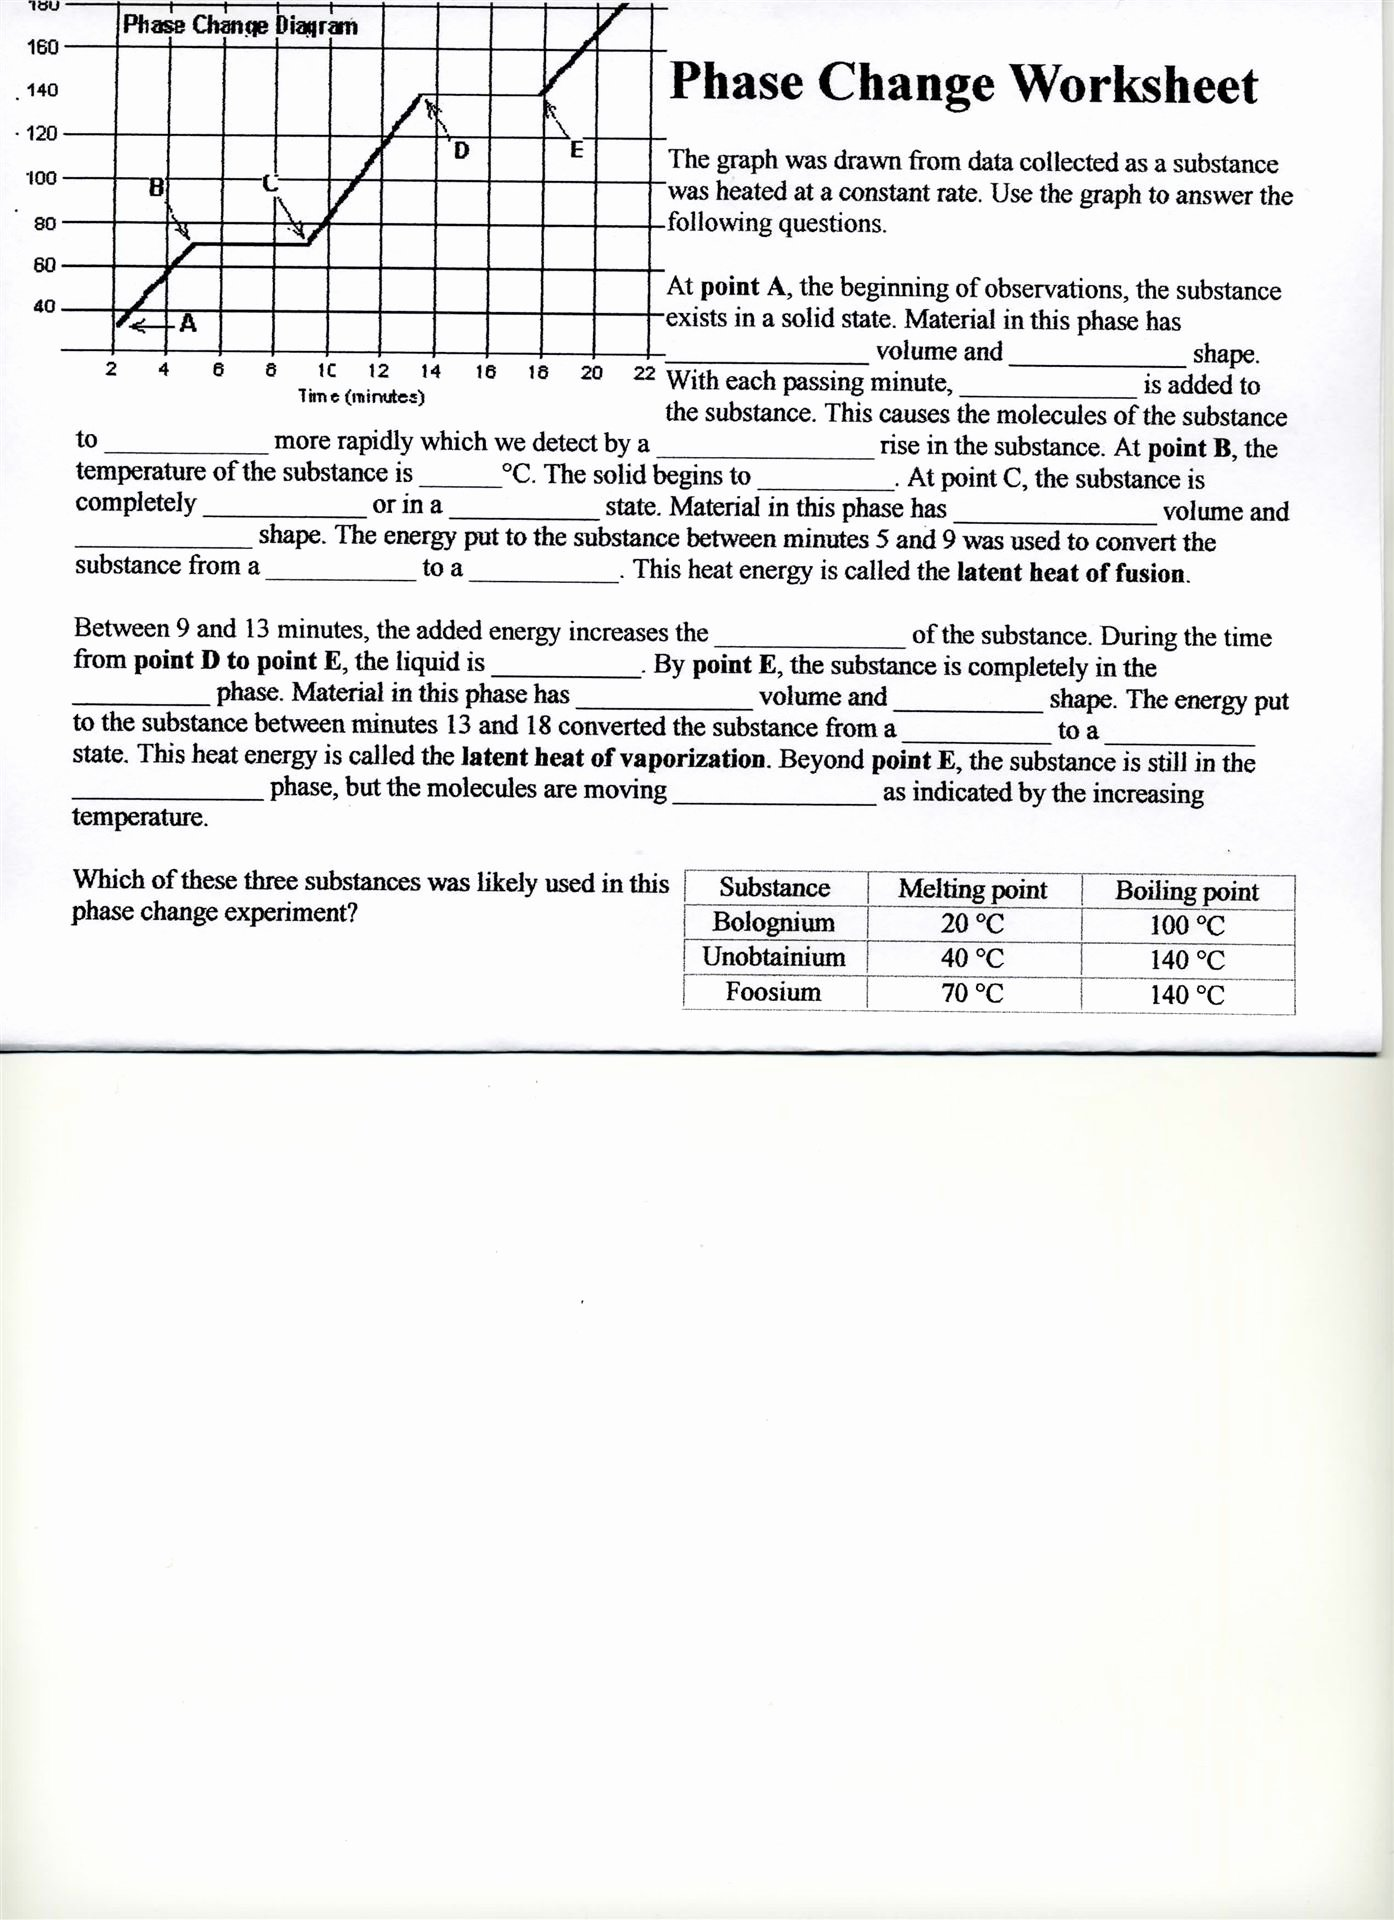 Phase Change Worksheet Answers Awesome Worksheet Phase Change Worksheet Answers Grass Fedjp